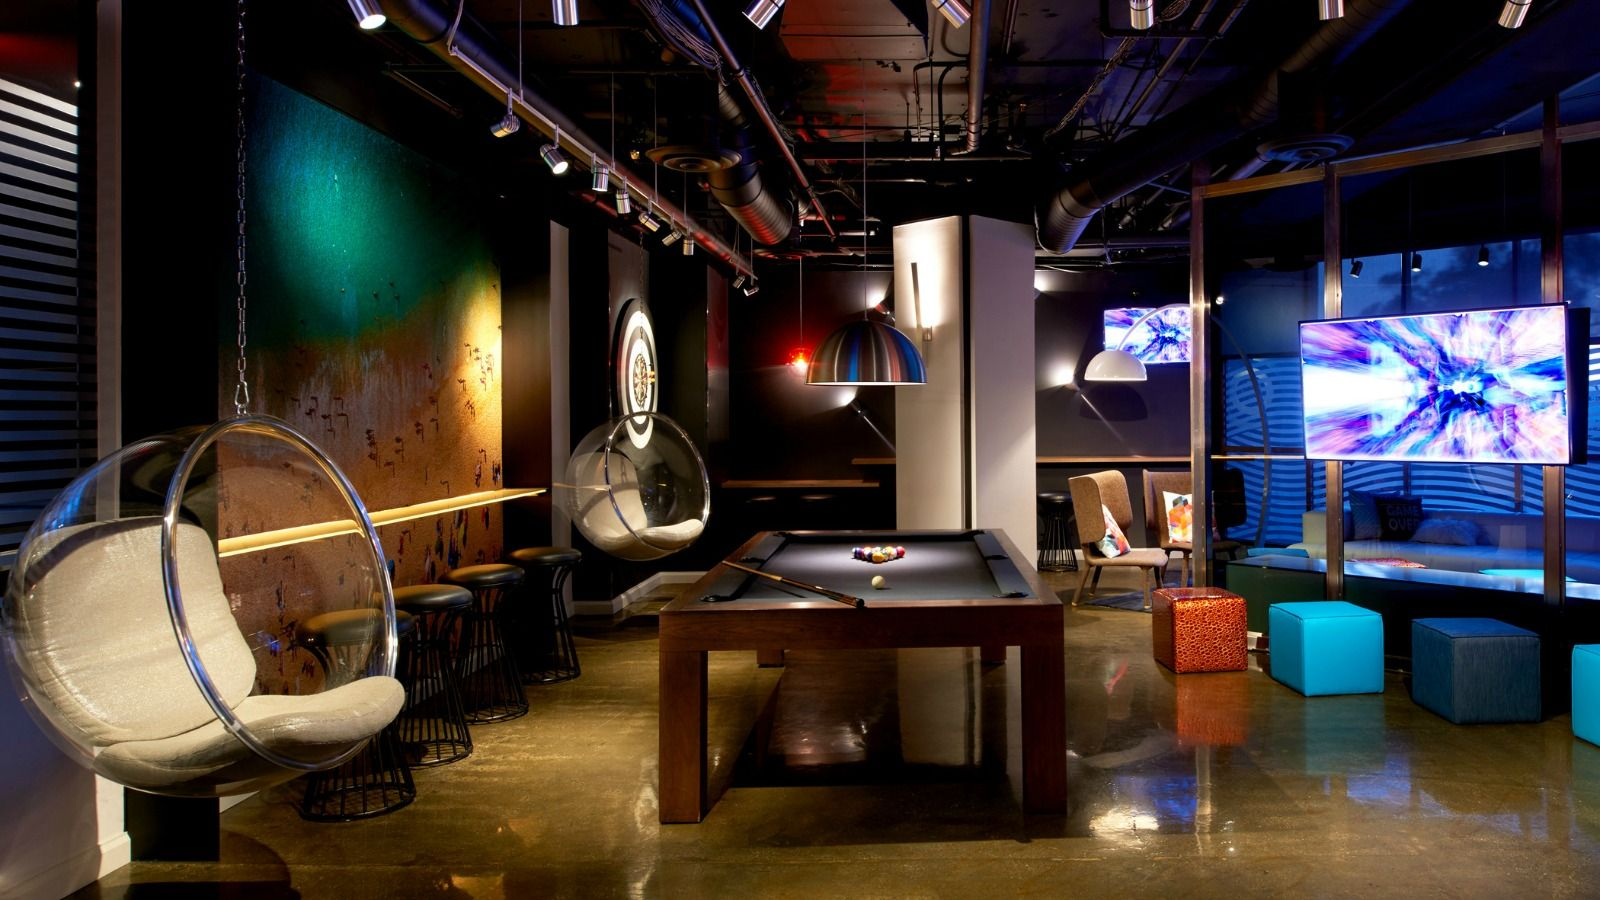 Le Meridien Delfina Santa Monica Meeting Space - Sandbox Game Room